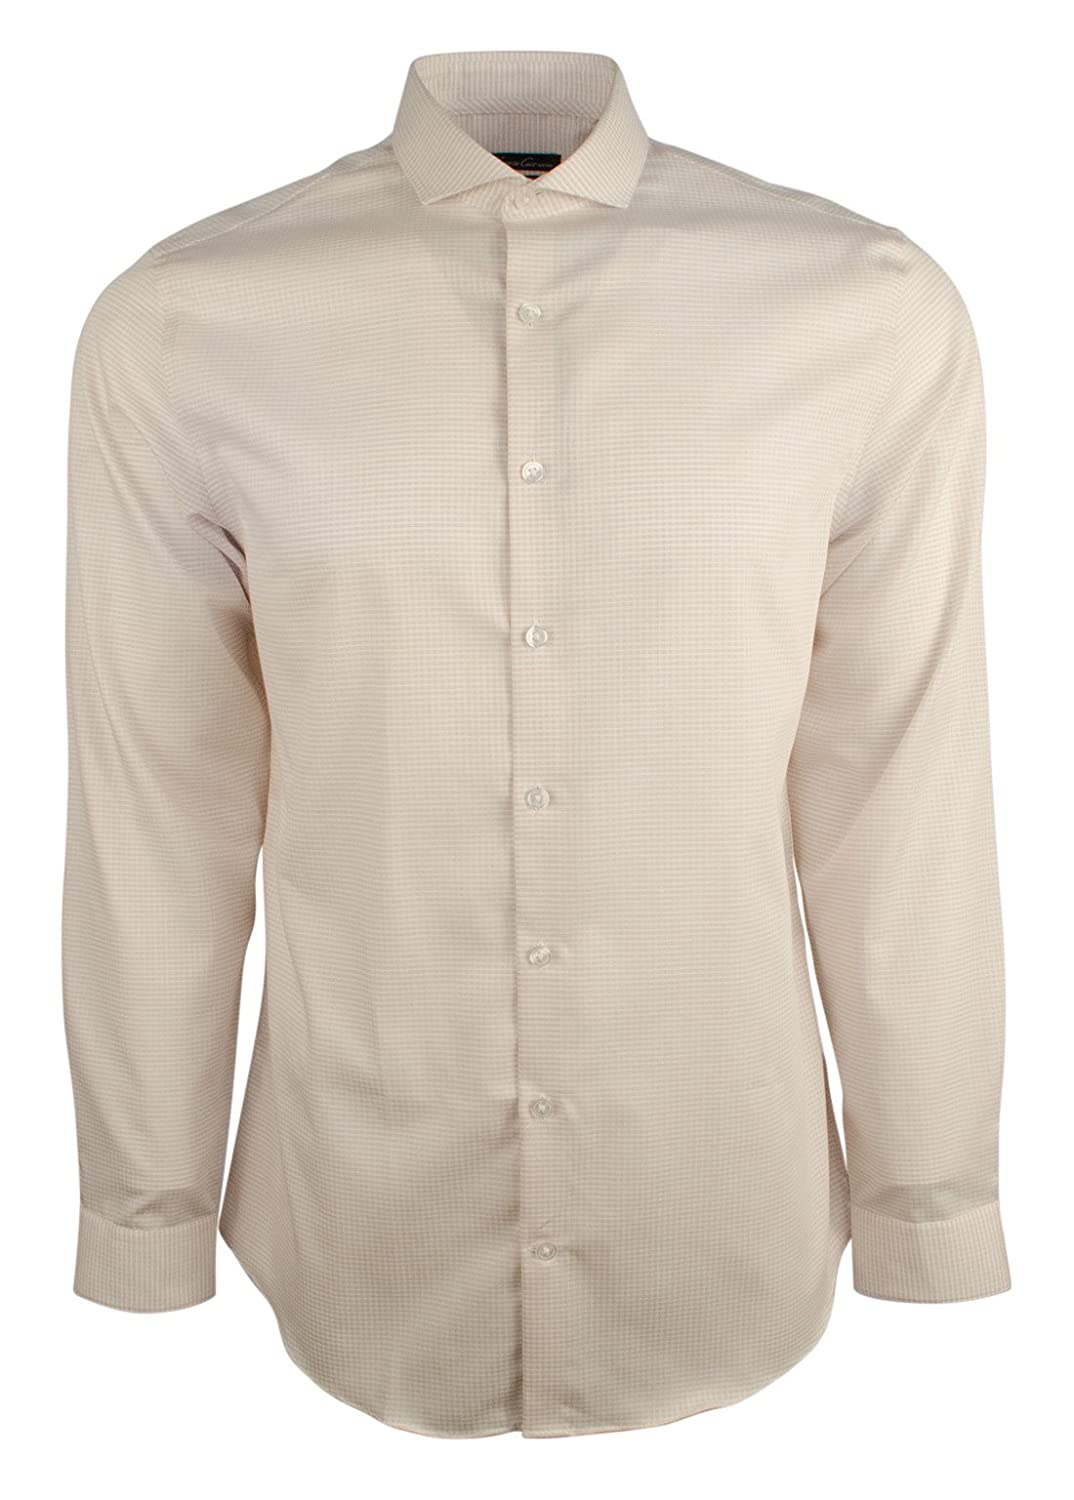 a8013fb63 Slim Fit Dress Shirts Nyc - DREAMWORKS